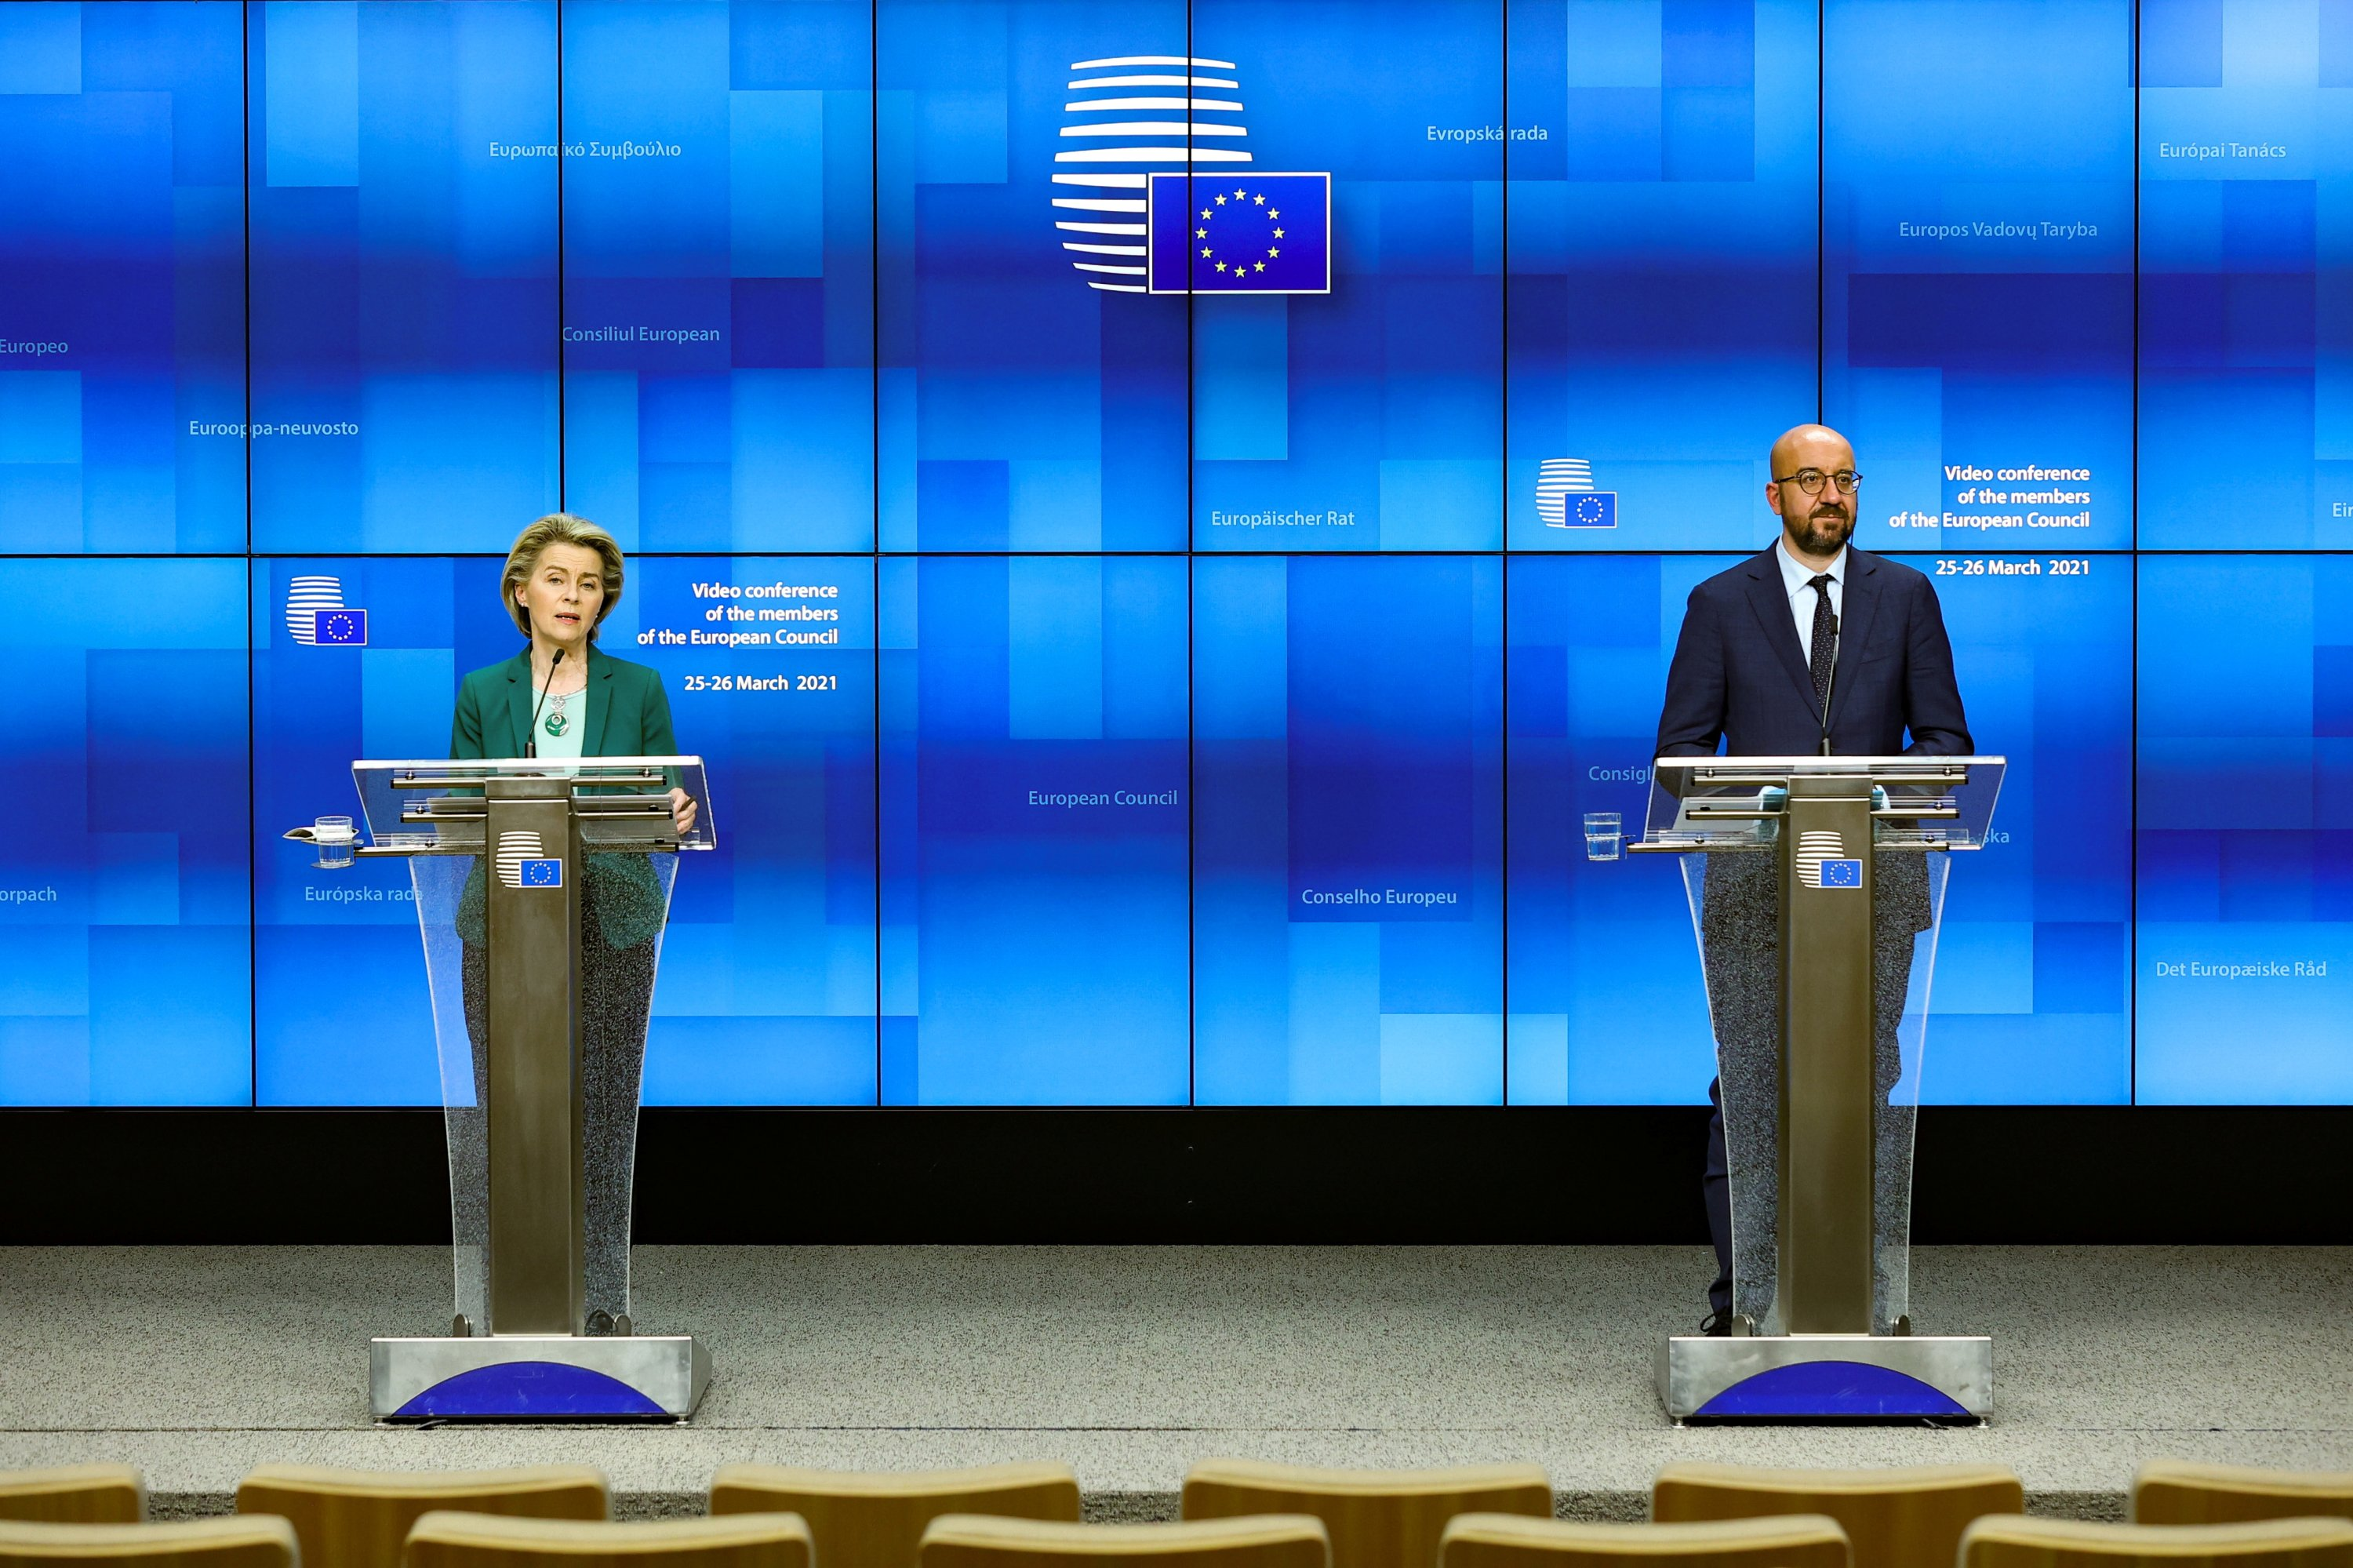 European Commission President Ursula von der Leyen (L) and European Council President Charles Michel deliver a joint press conference at the end of the first day of a European Union (EU) summit over video conference at the European Council Building in Brussels, Belgium, March 25, 2021.  (REUTERS)